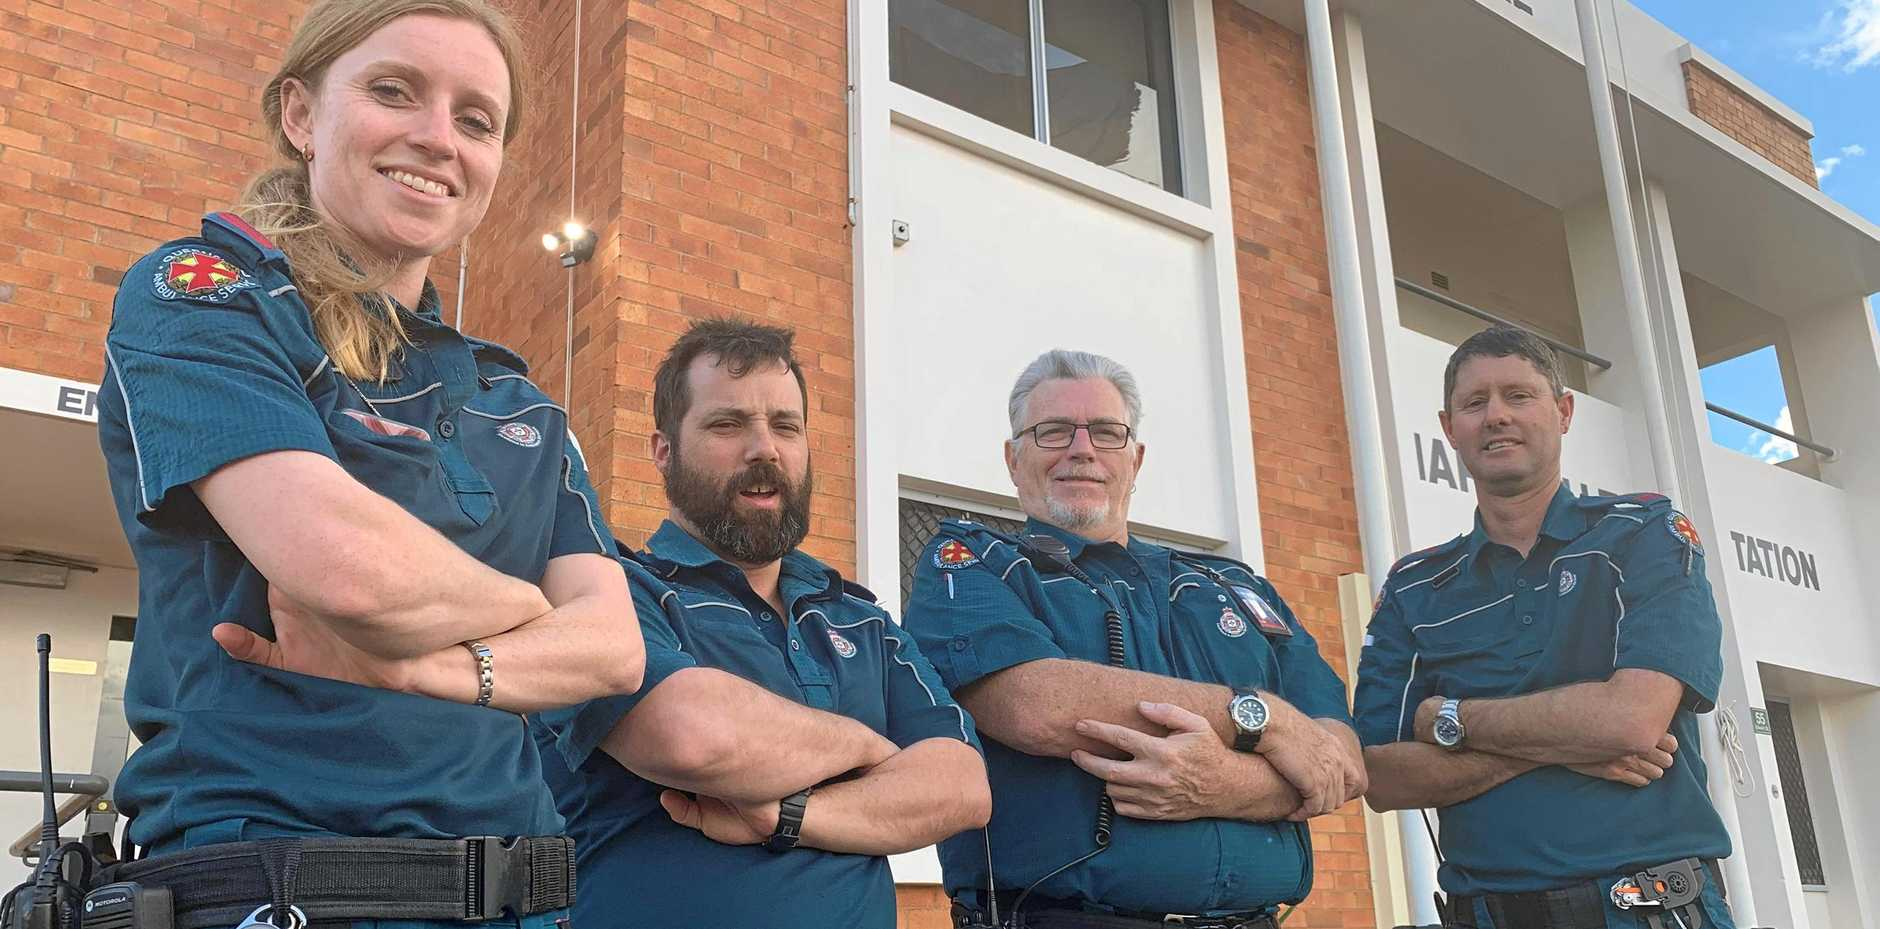 GEARED UP: Charleville ambulance officers Nicole Everitt, Jed Owen, Russel Larkin and Geoff Little are looking forward to letting down their hair as hundreds support local emergency services at the 000 Ball.